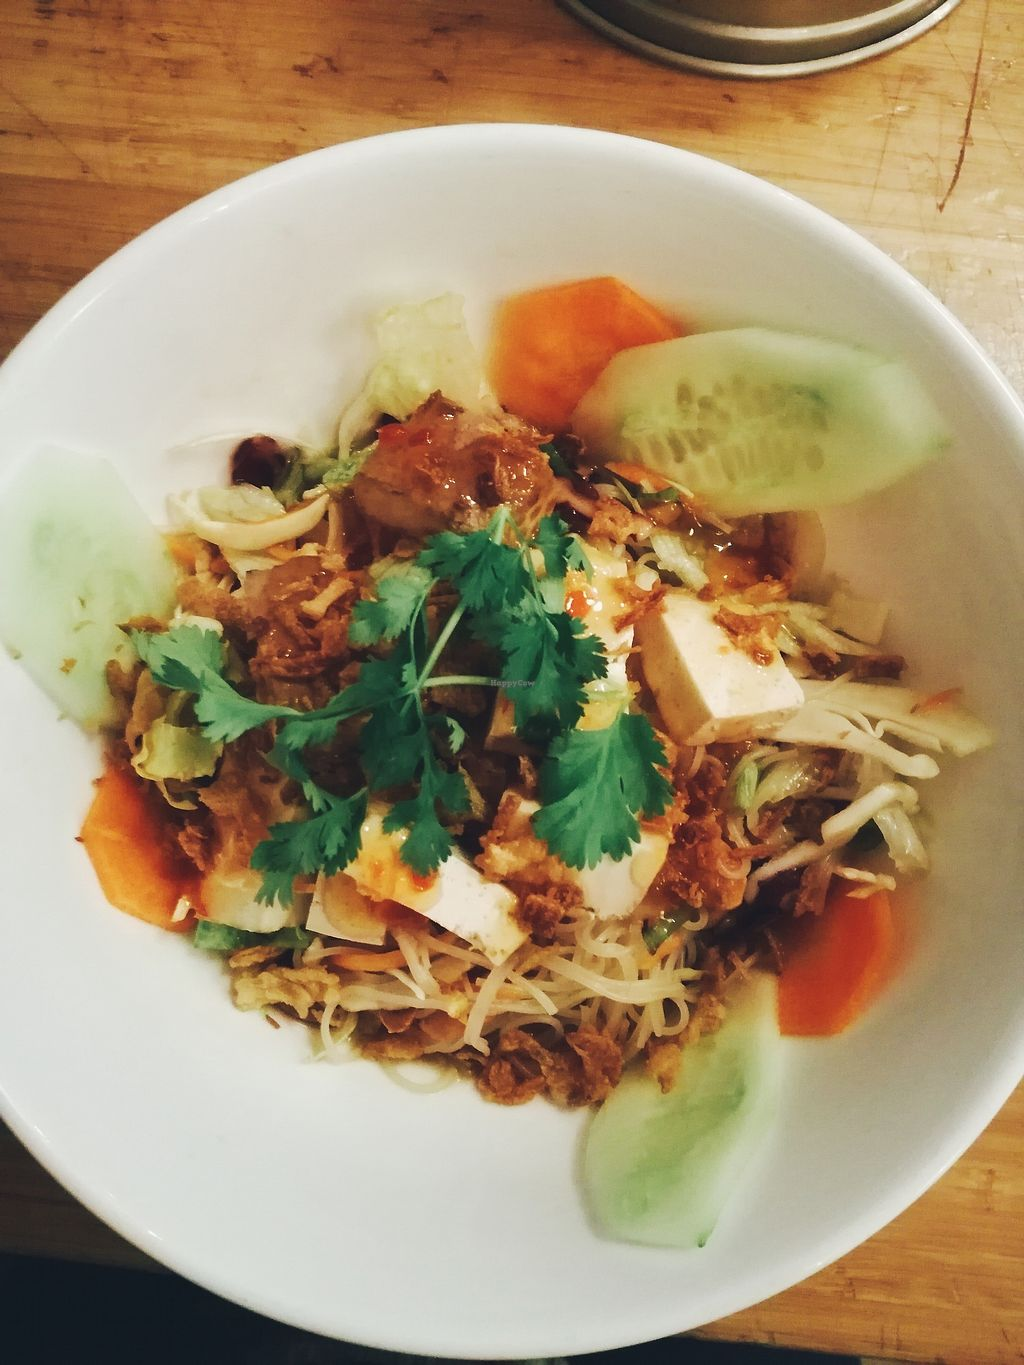 "Photo of LaVietnamita  by <a href=""/members/profile/Mdme.%20Mariais"">Mdme. Mariais</a> <br/>Rice noodles with tofu <br/> November 29, 2017  - <a href='/contact/abuse/image/26877/330600'>Report</a>"